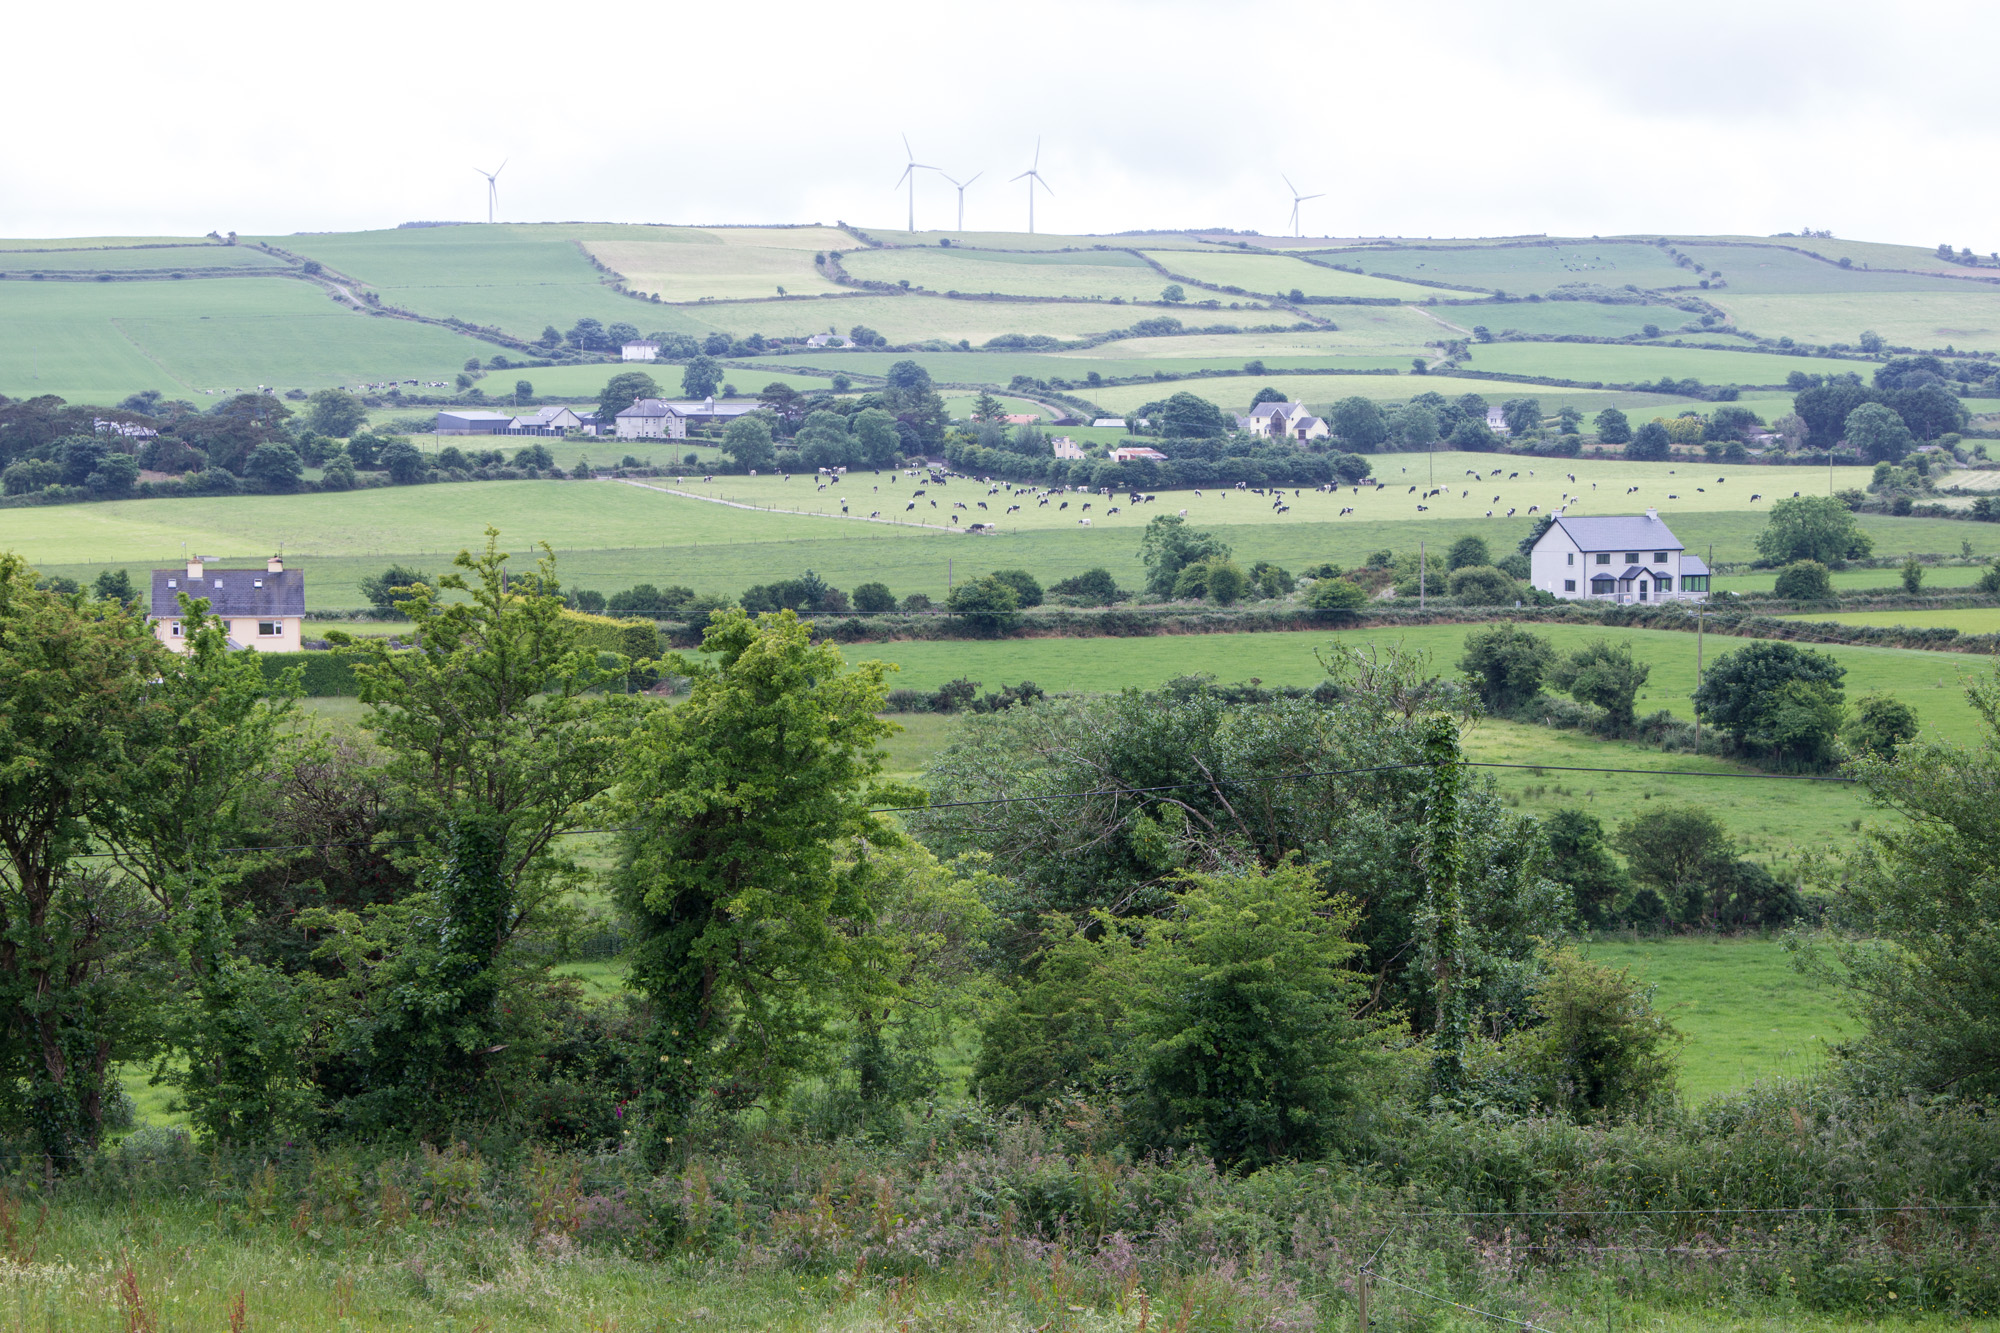 View of green fields, trees, and houses in the countryside in Ireland